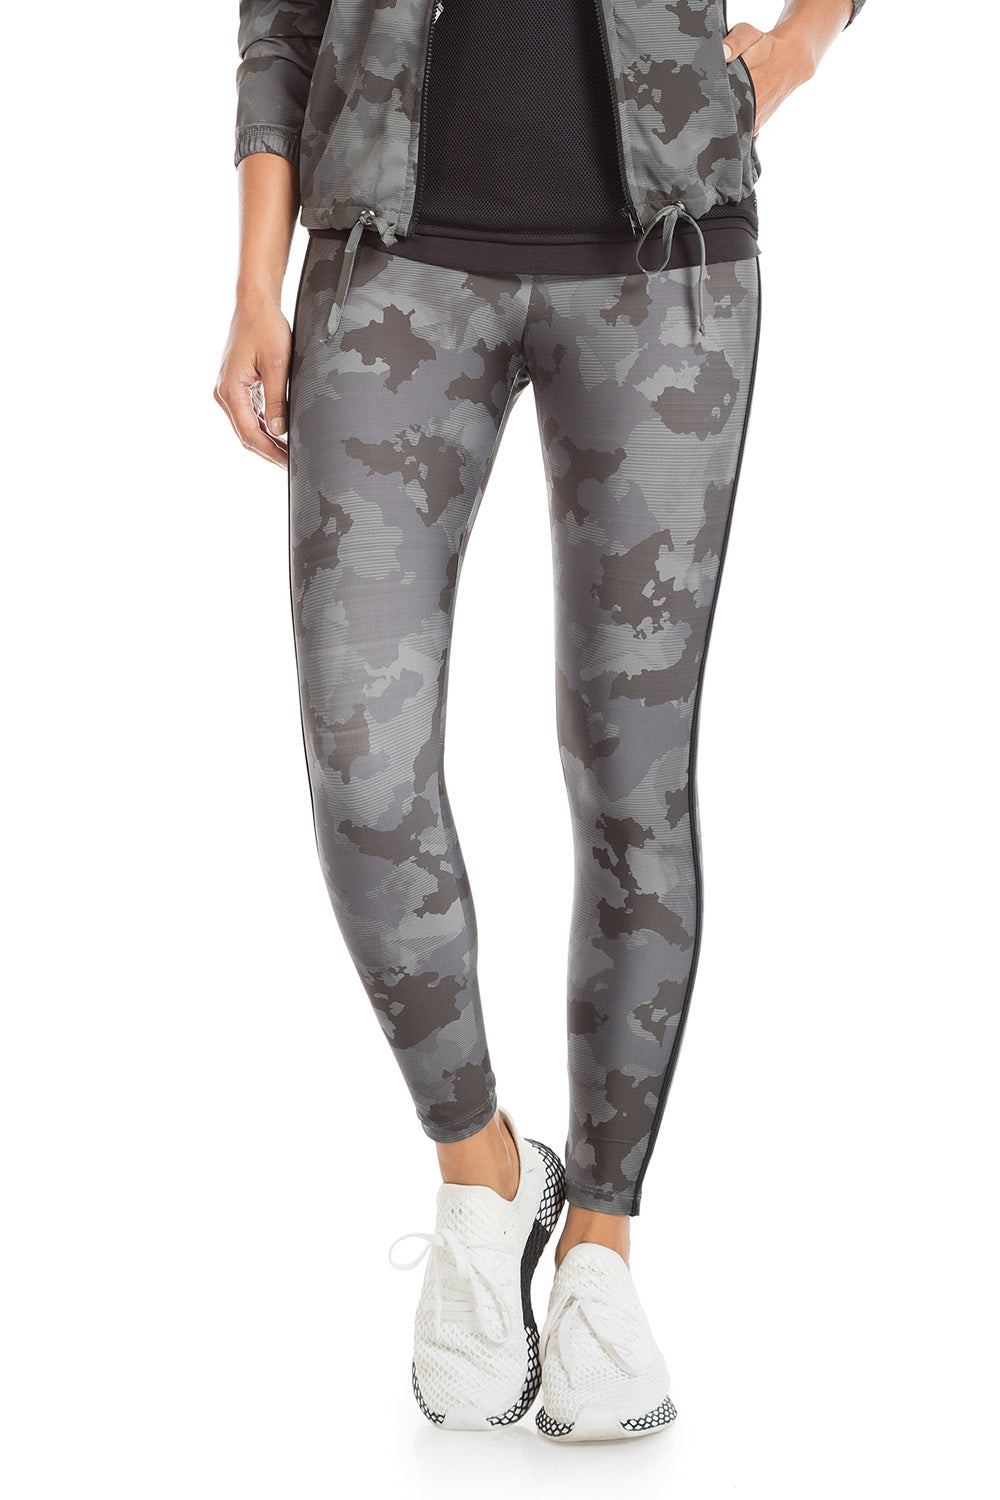 Cool Camuflage Legging 1